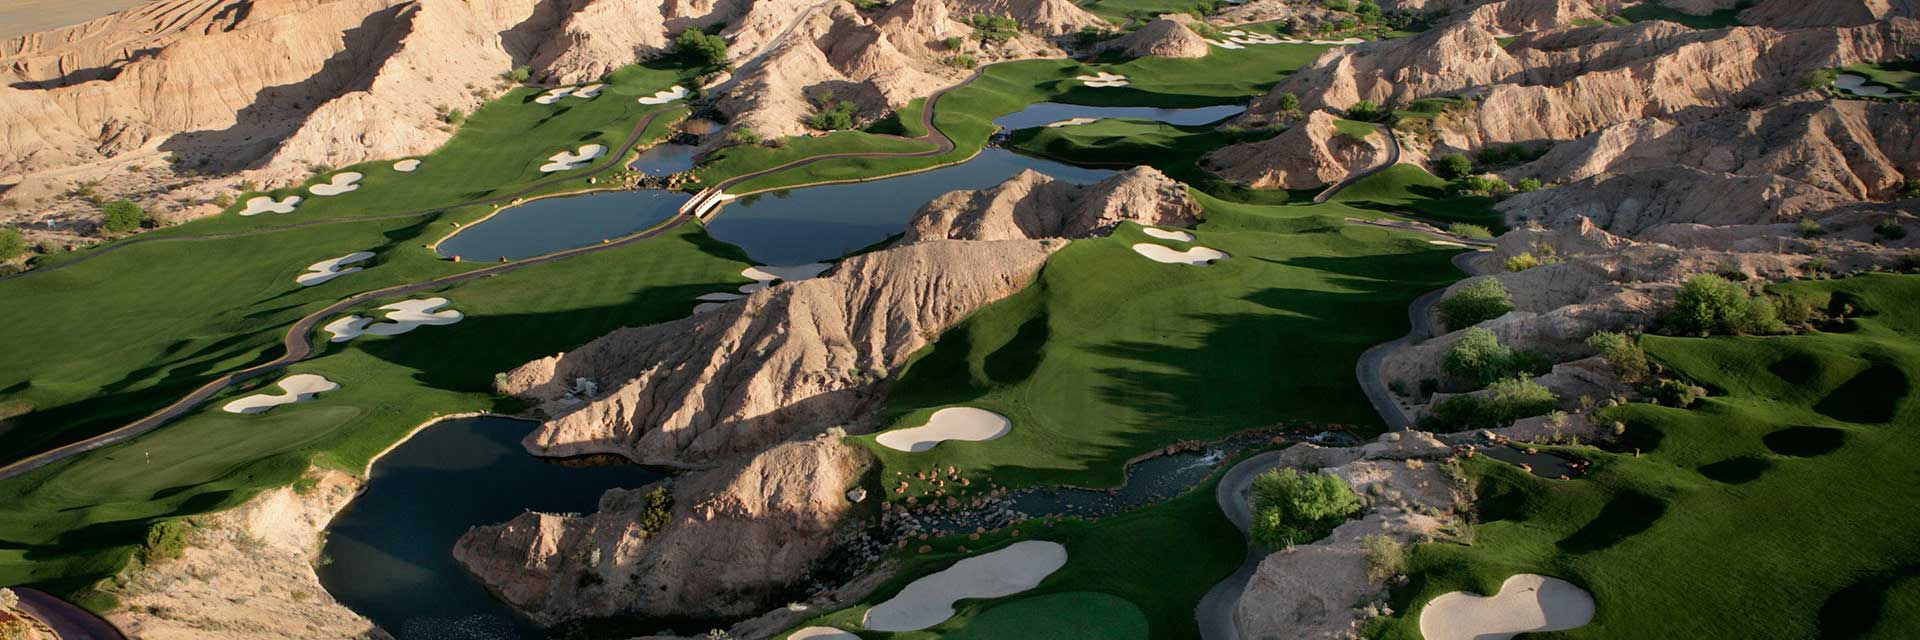 Mesquite Golf Package: Stonehaven Private Golf Homes +Wolf Creek / Conestoga / Falcon / Coyote for $219 per person, per day!